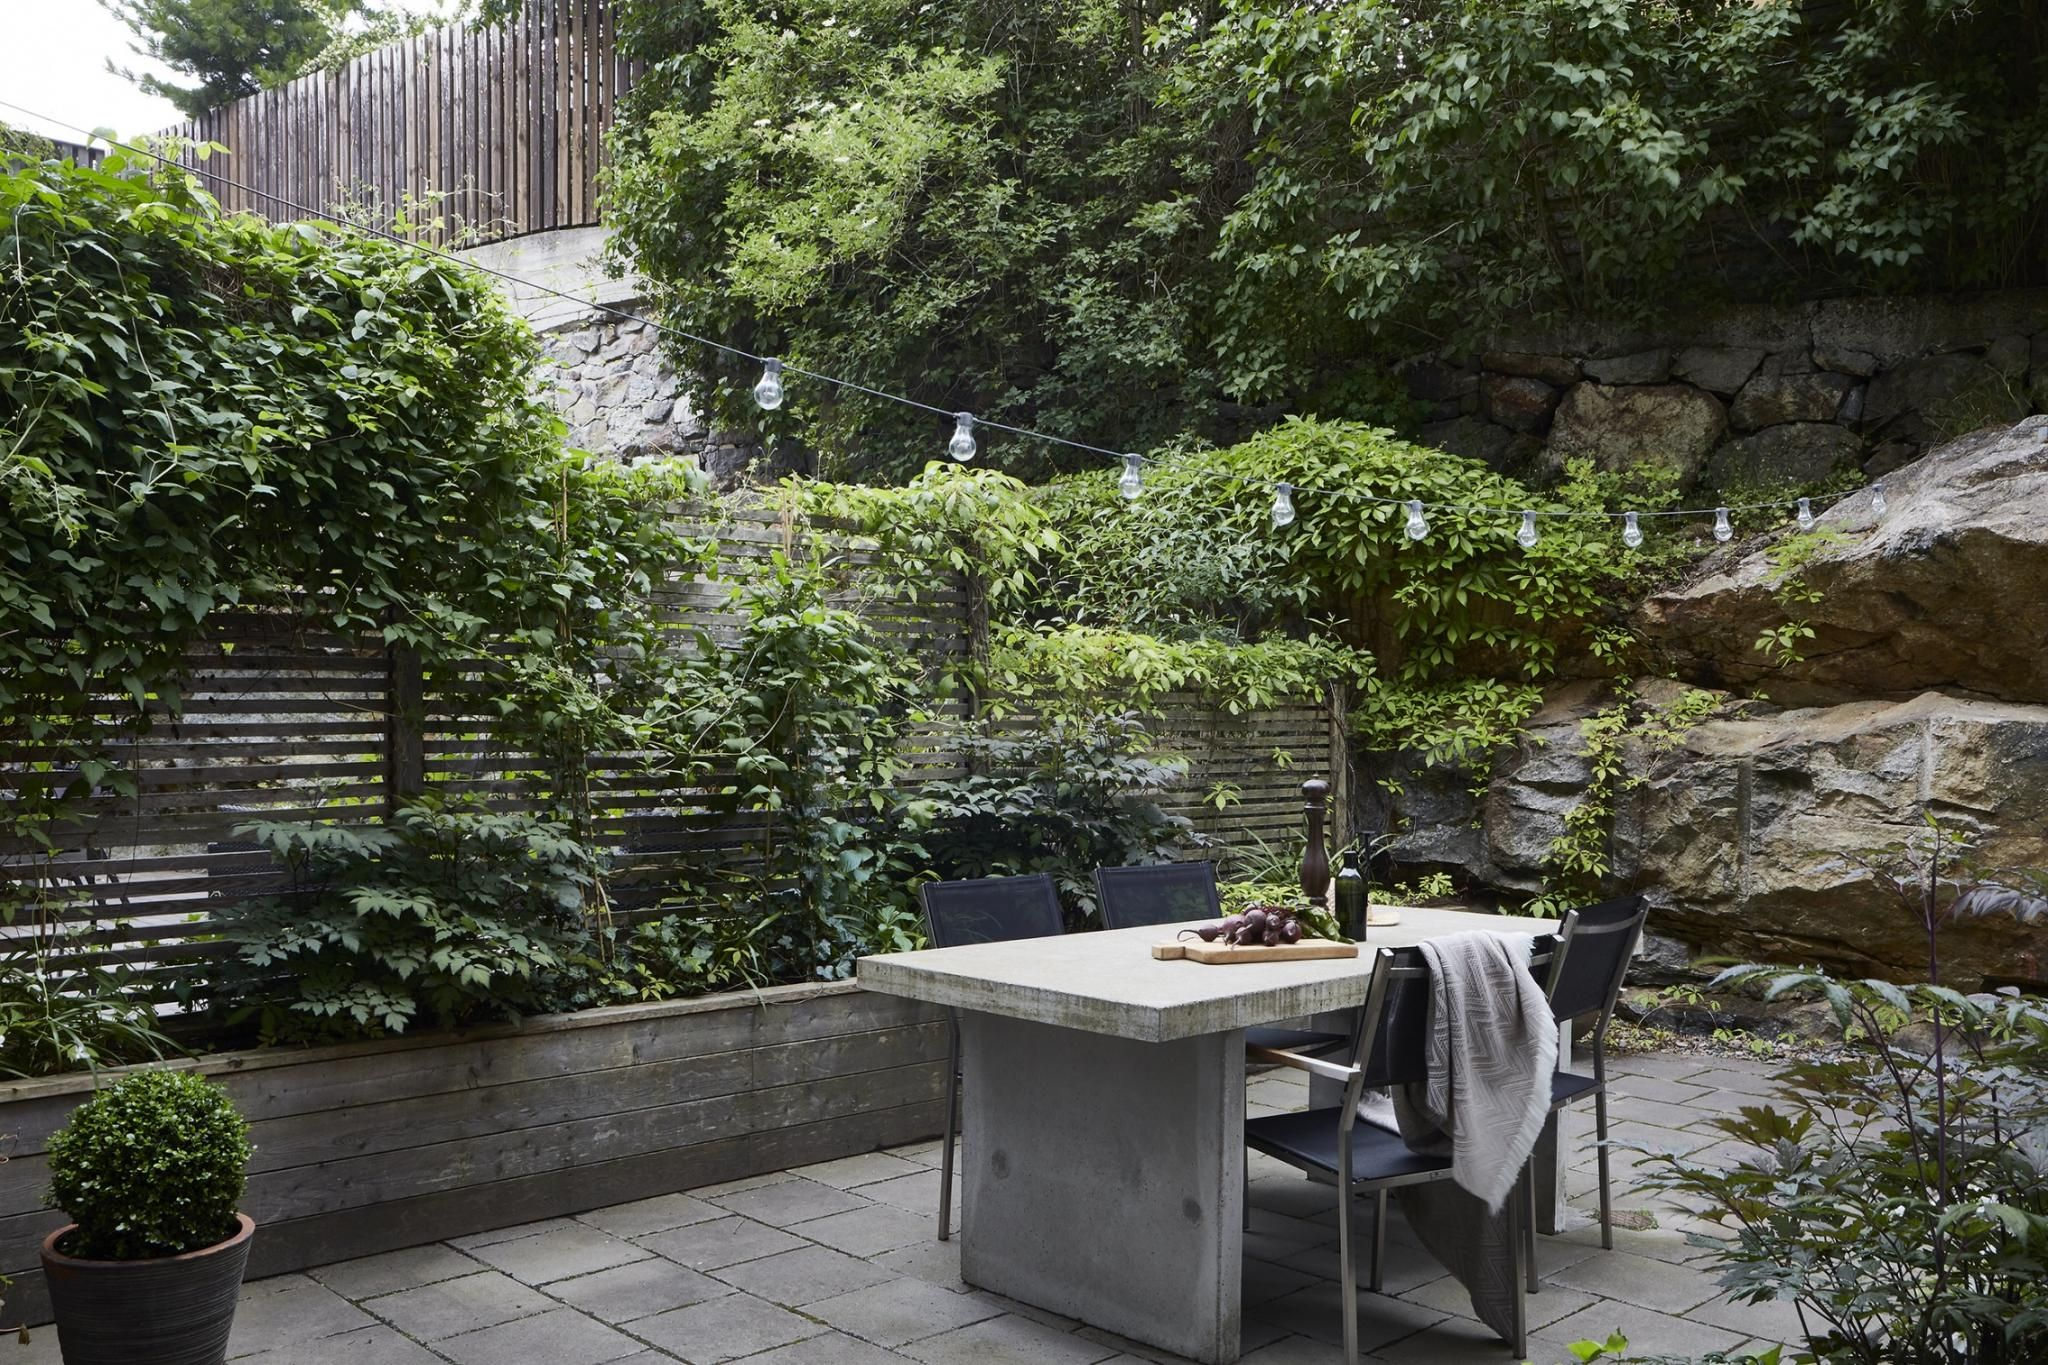 17 Best Backyard Privacy Fence Ideas for Every Style and Need on Decorations For Privacy Fence id=38924